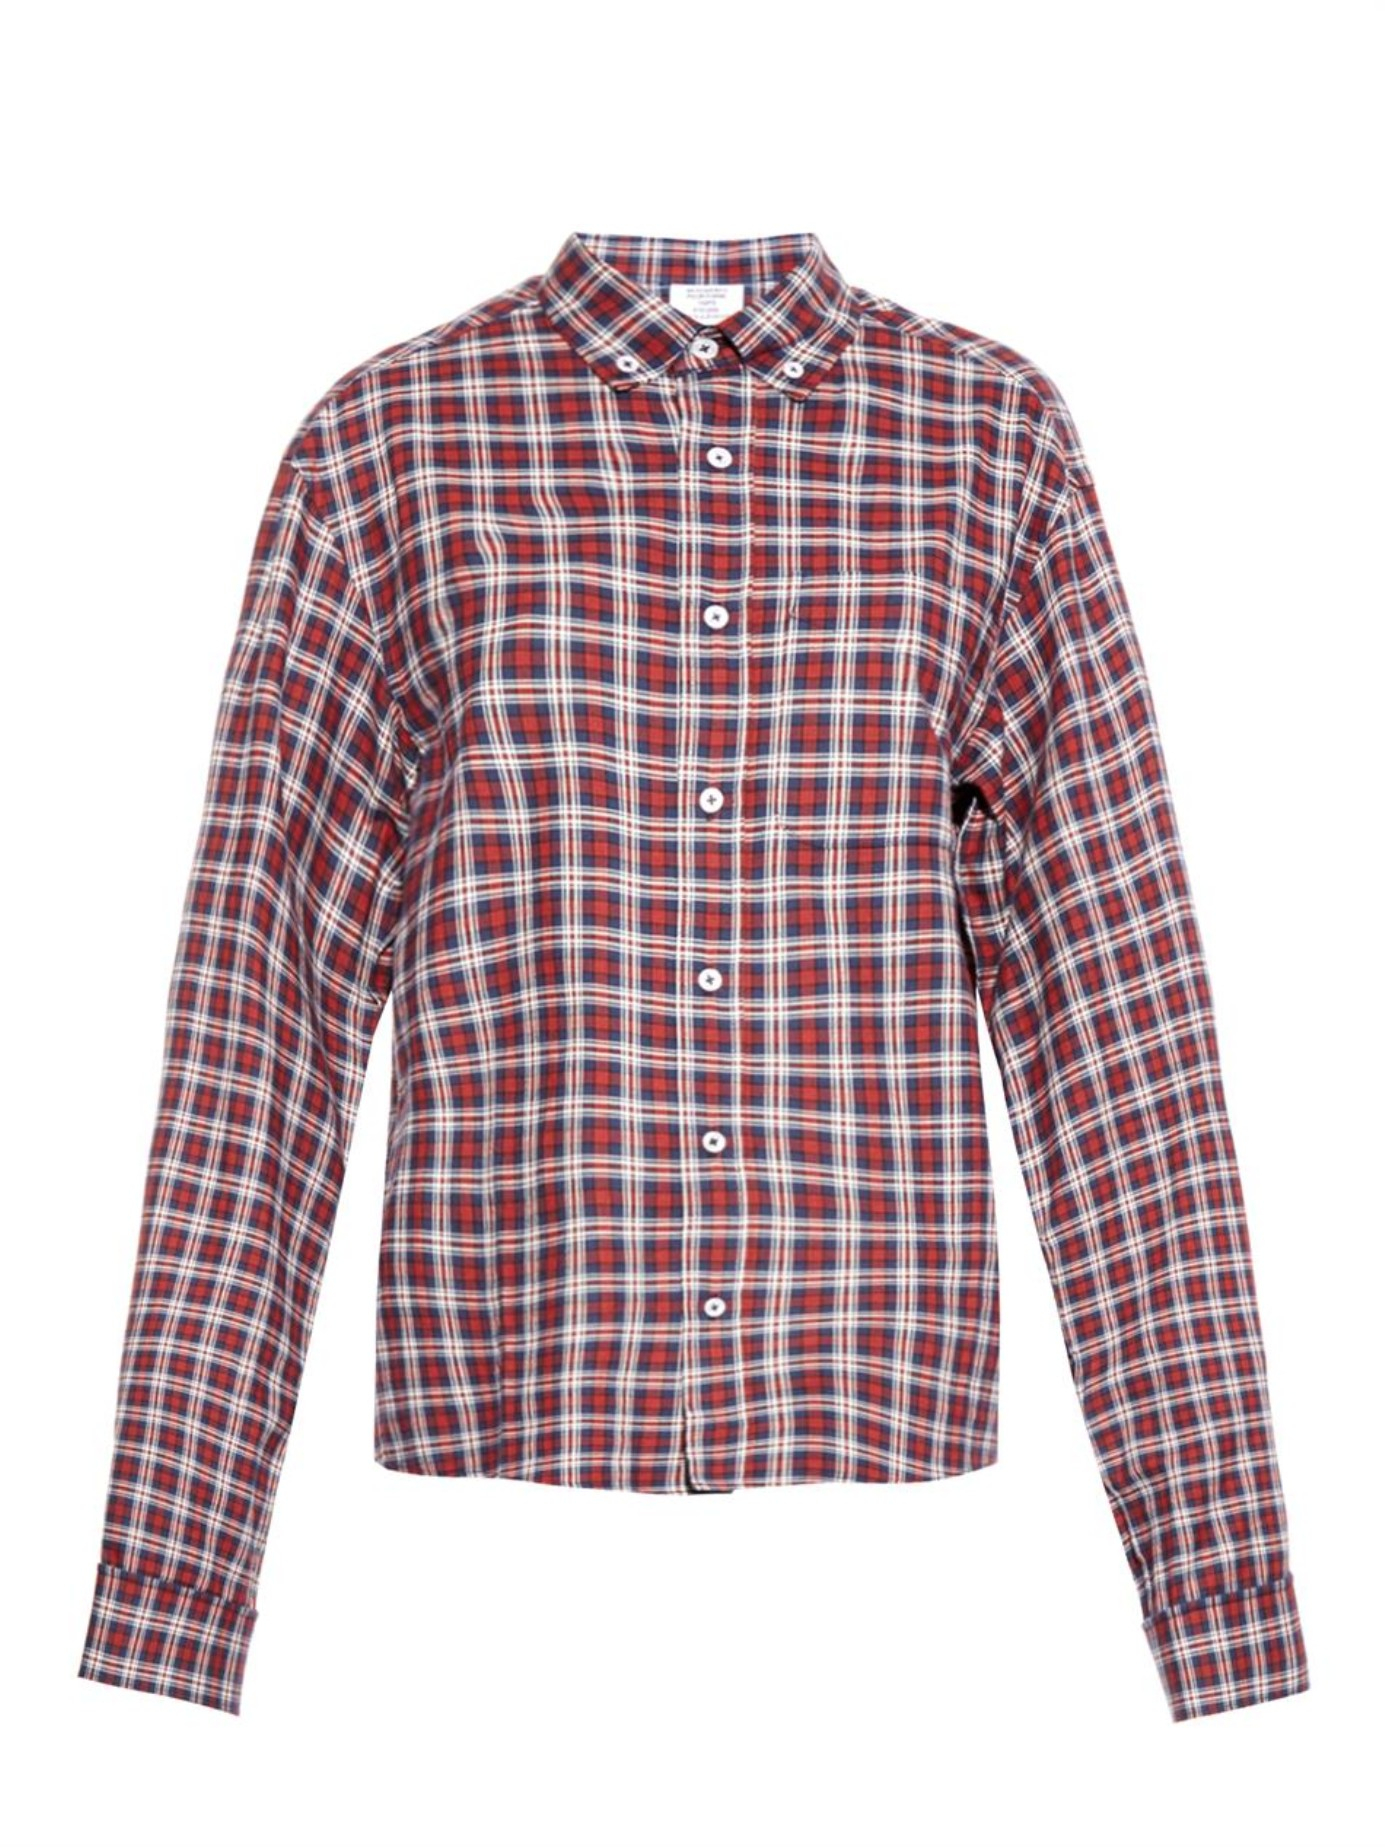 Lyst Vetements Oversized Plaid Cotton Shirt In Red